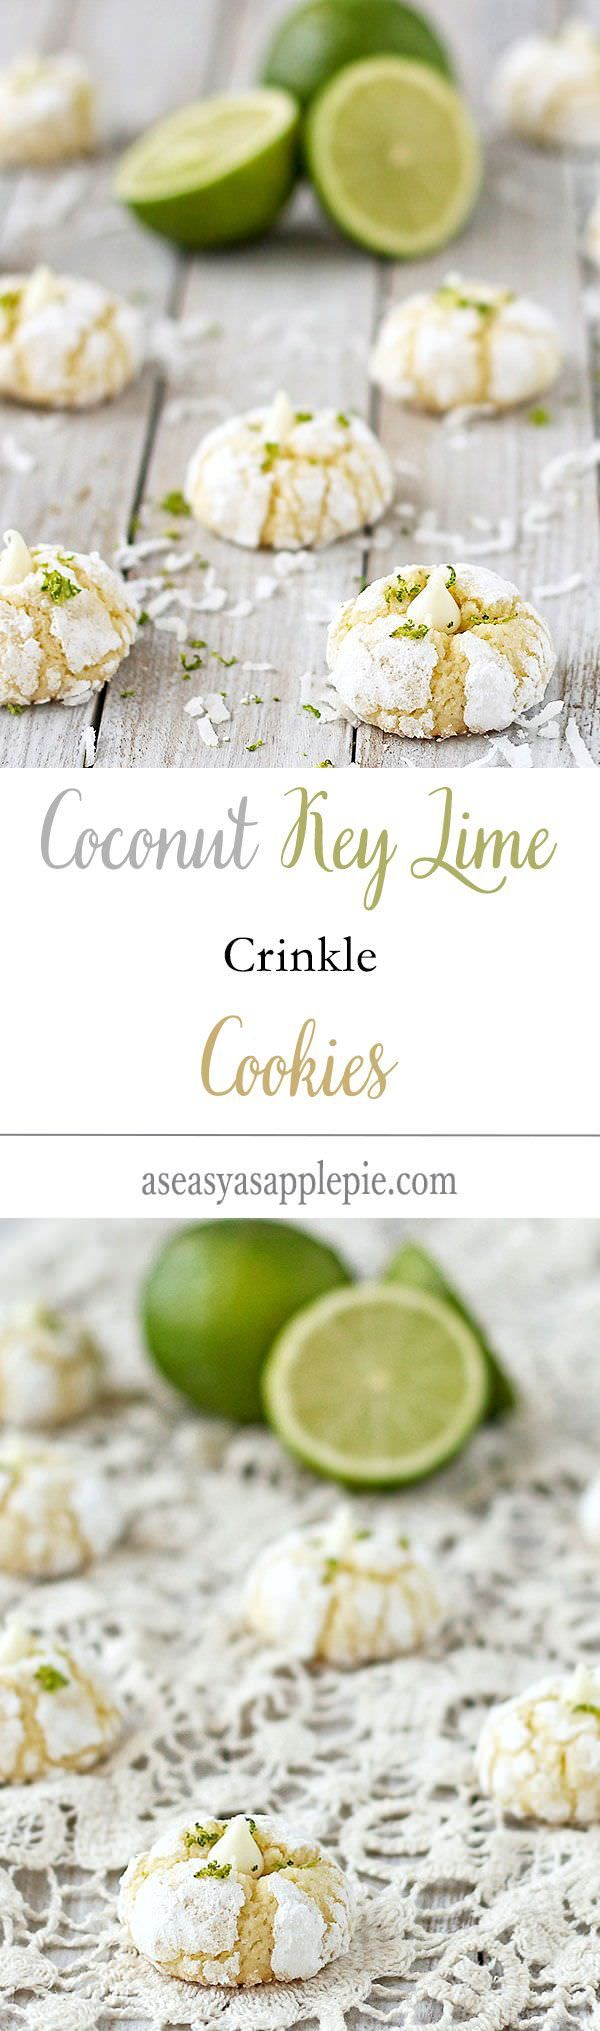 Coconut Key Lime Crinkle Cookies